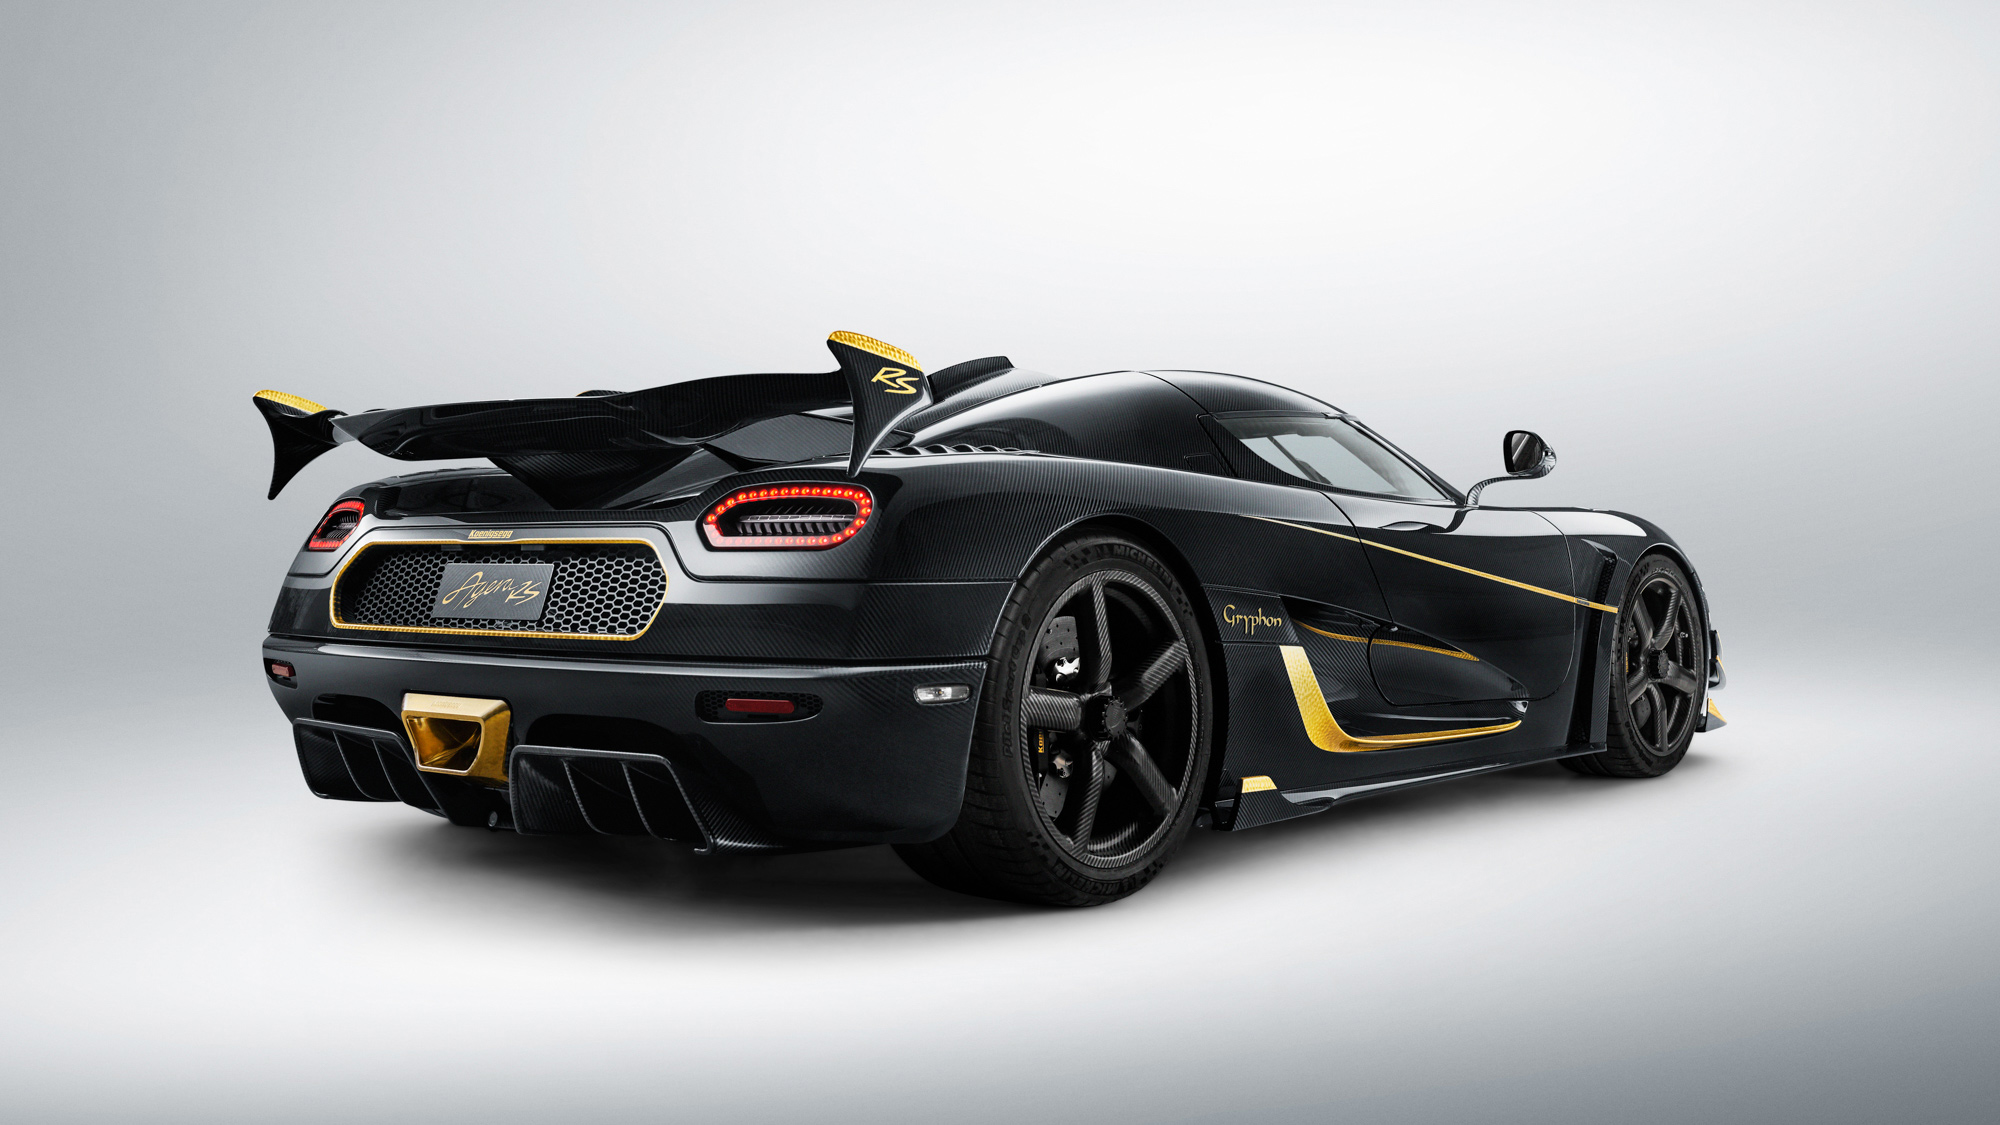 Captivating 2017 Koenigsegg Agera RS Gryphon 2